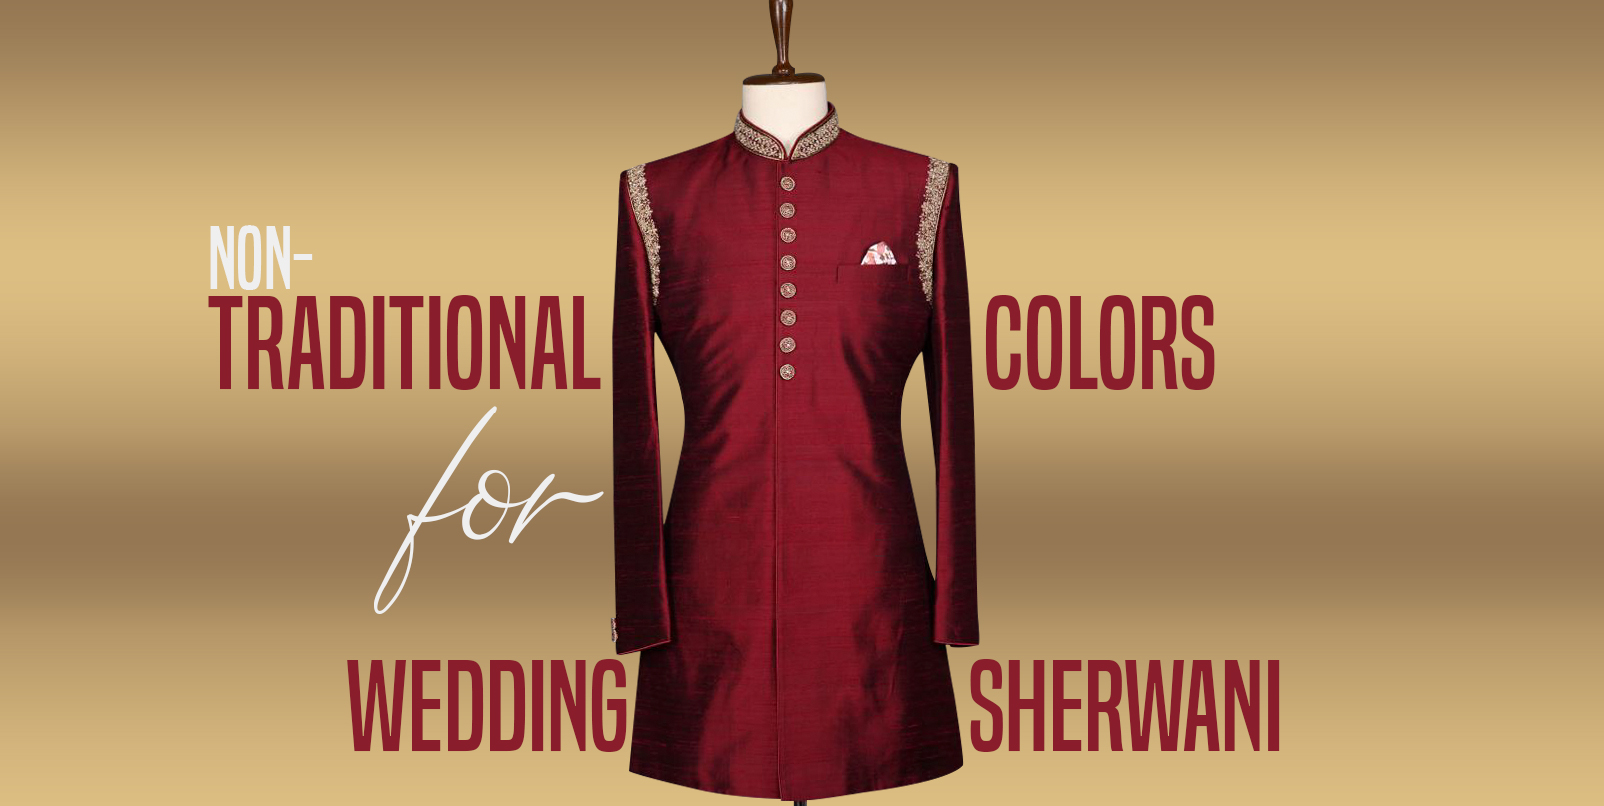 Non-Traditional Colors for Wedding Sherwani